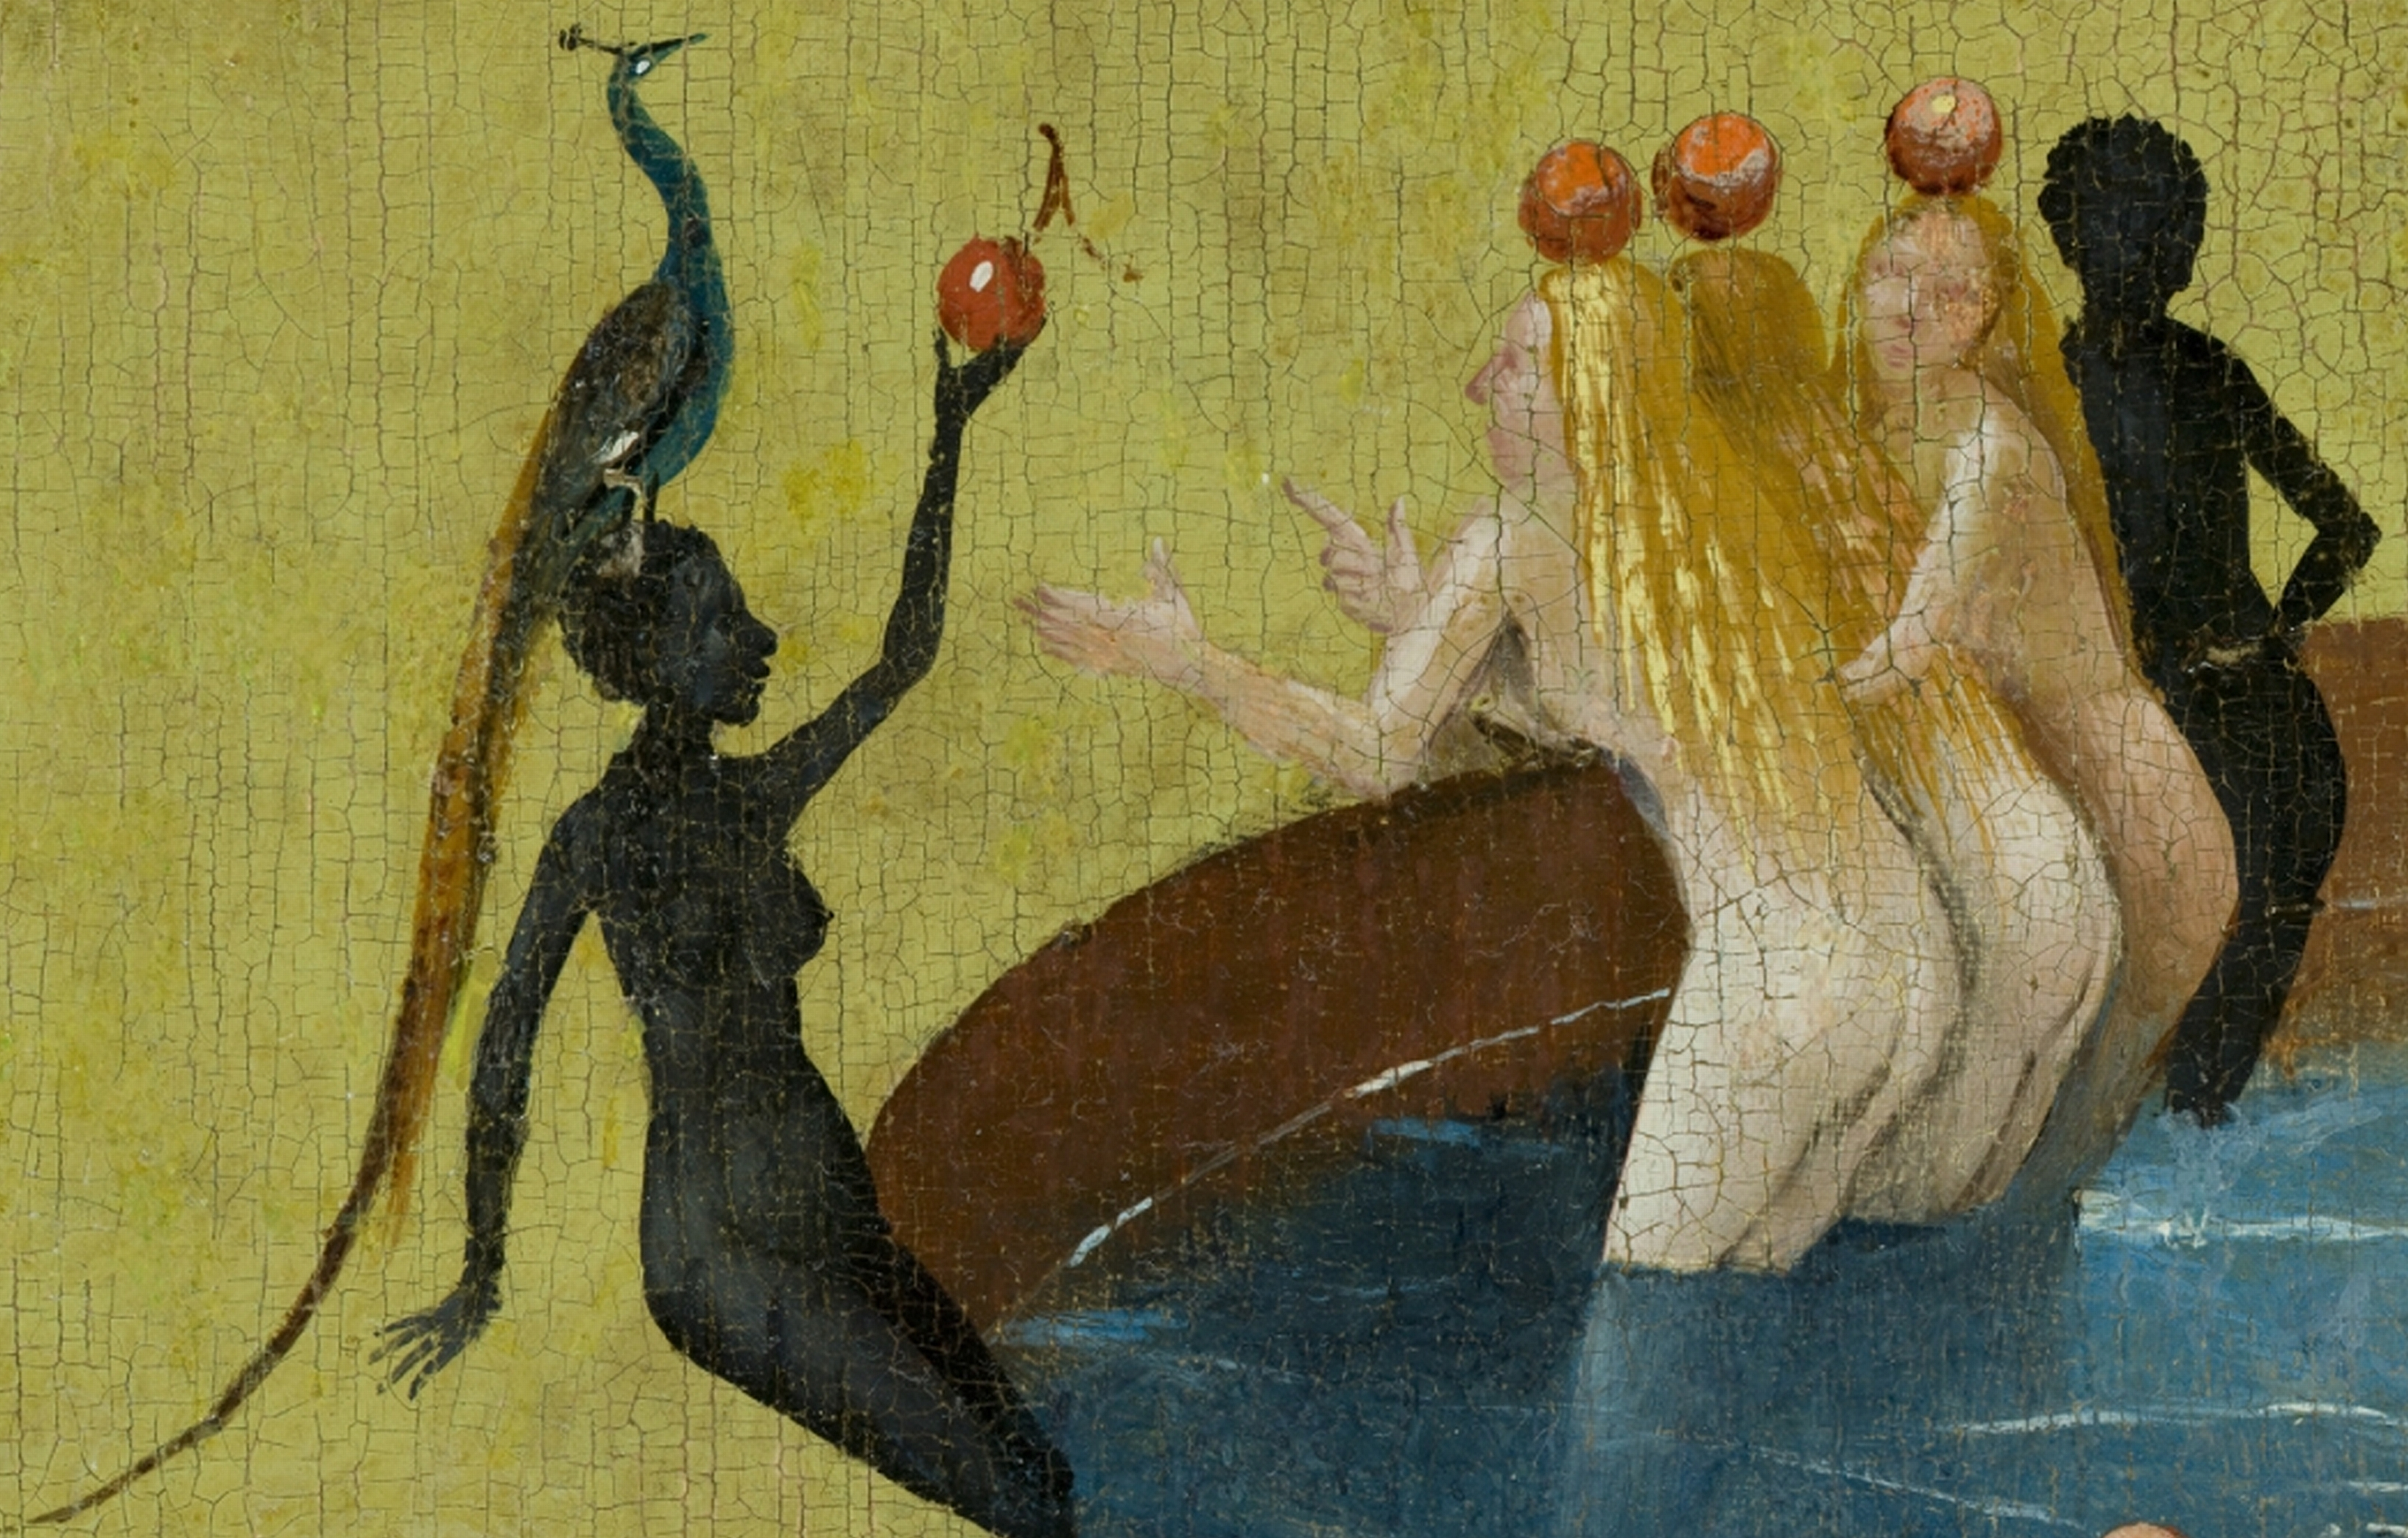 http://upload.wikimedia.org/wikipedia/commons/e/e7/Bosch%2C_Hieronymus_-_The_Garden_of_Earthly_Delights%2C_center_panel_-_Detail_women_with_peacock.jpg